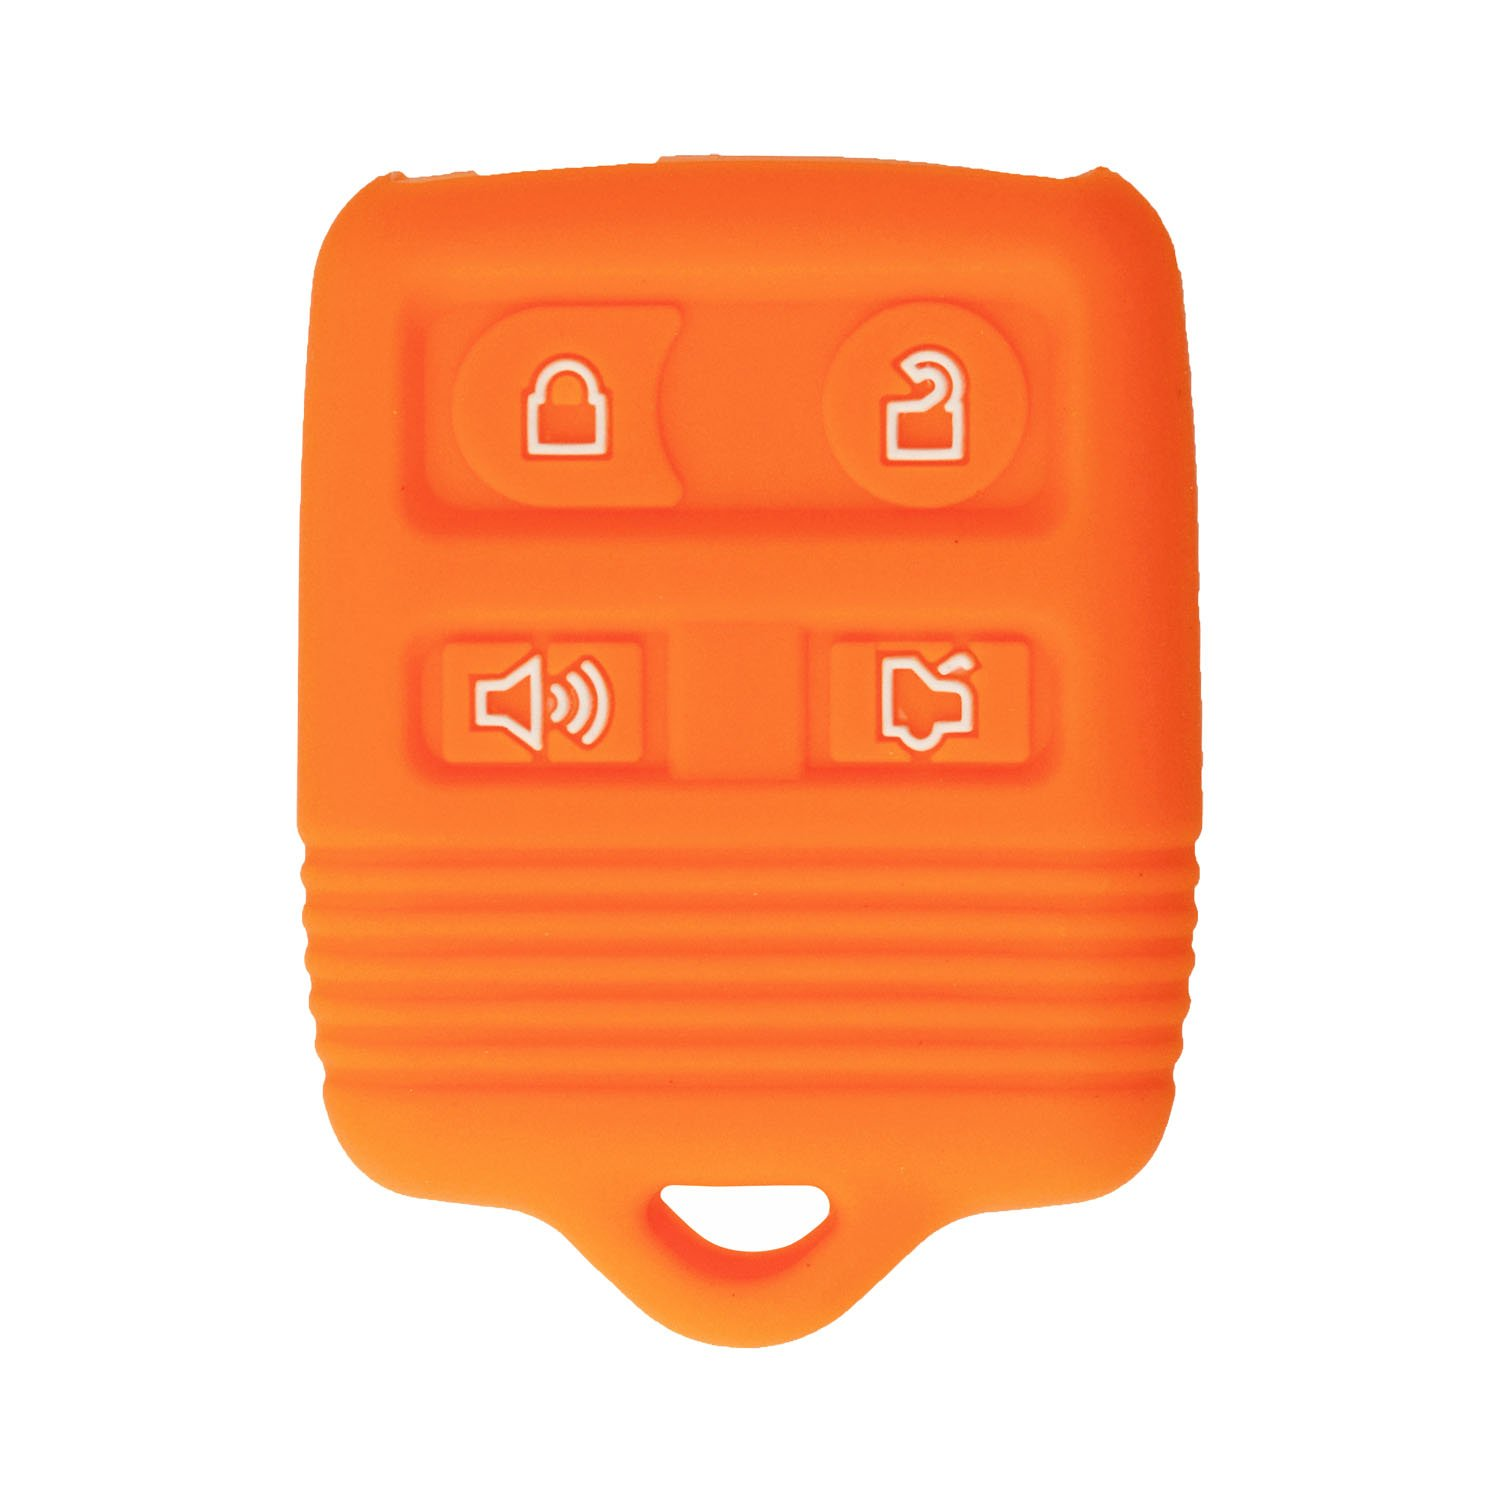 CWTWB1U331 qualitykeylessplus Protective Rubber Silicone Cover for 4 Button Ford Keyless Entry Remote Fobs FCC ID CWTWB1U345 Part #2S4T-15K601-AB with Keytag Return Service